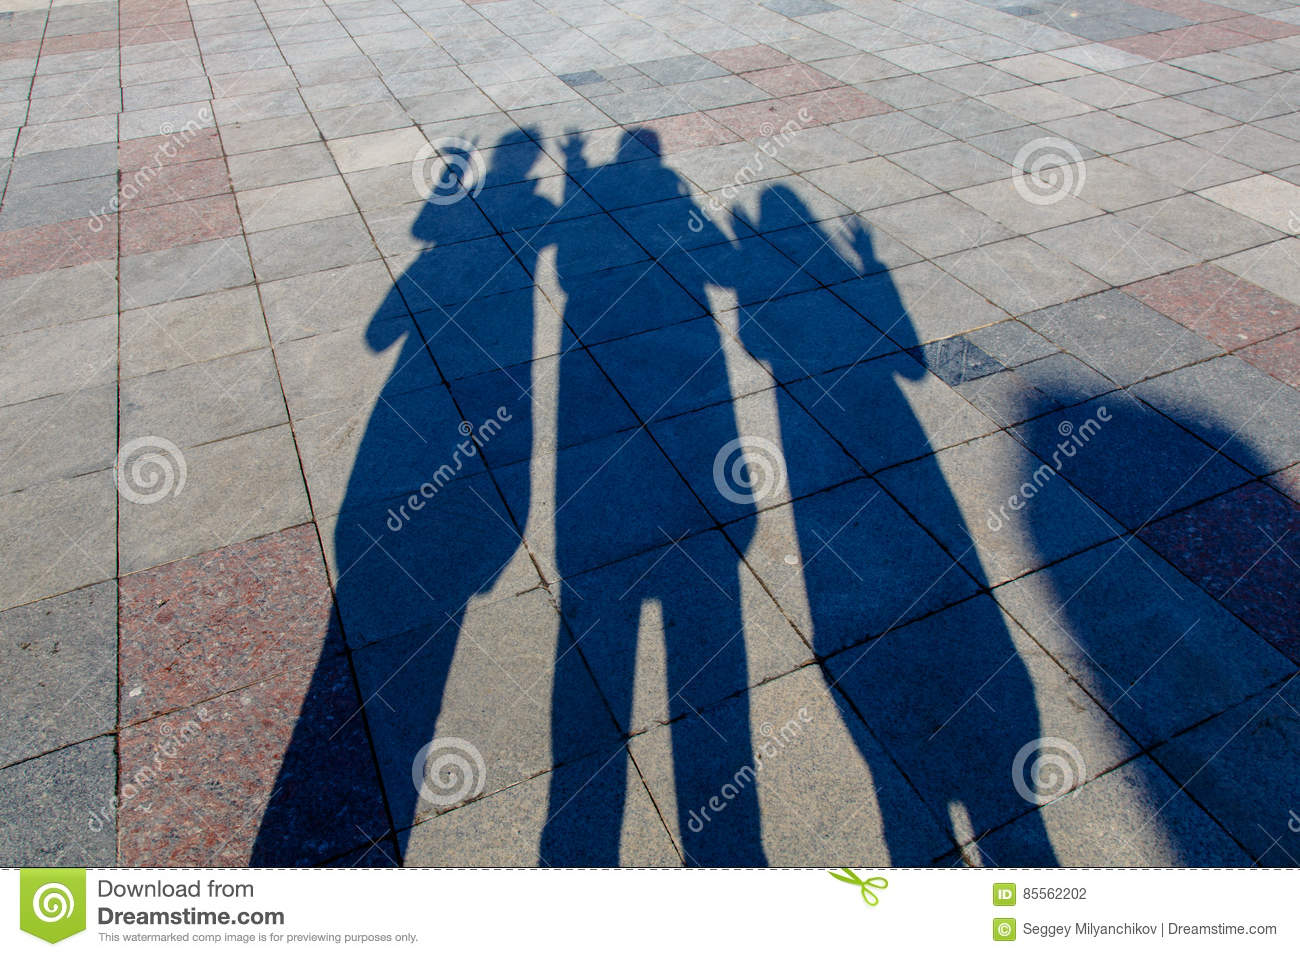 The Shadows Of Three People On A Pavement Tiles Stock